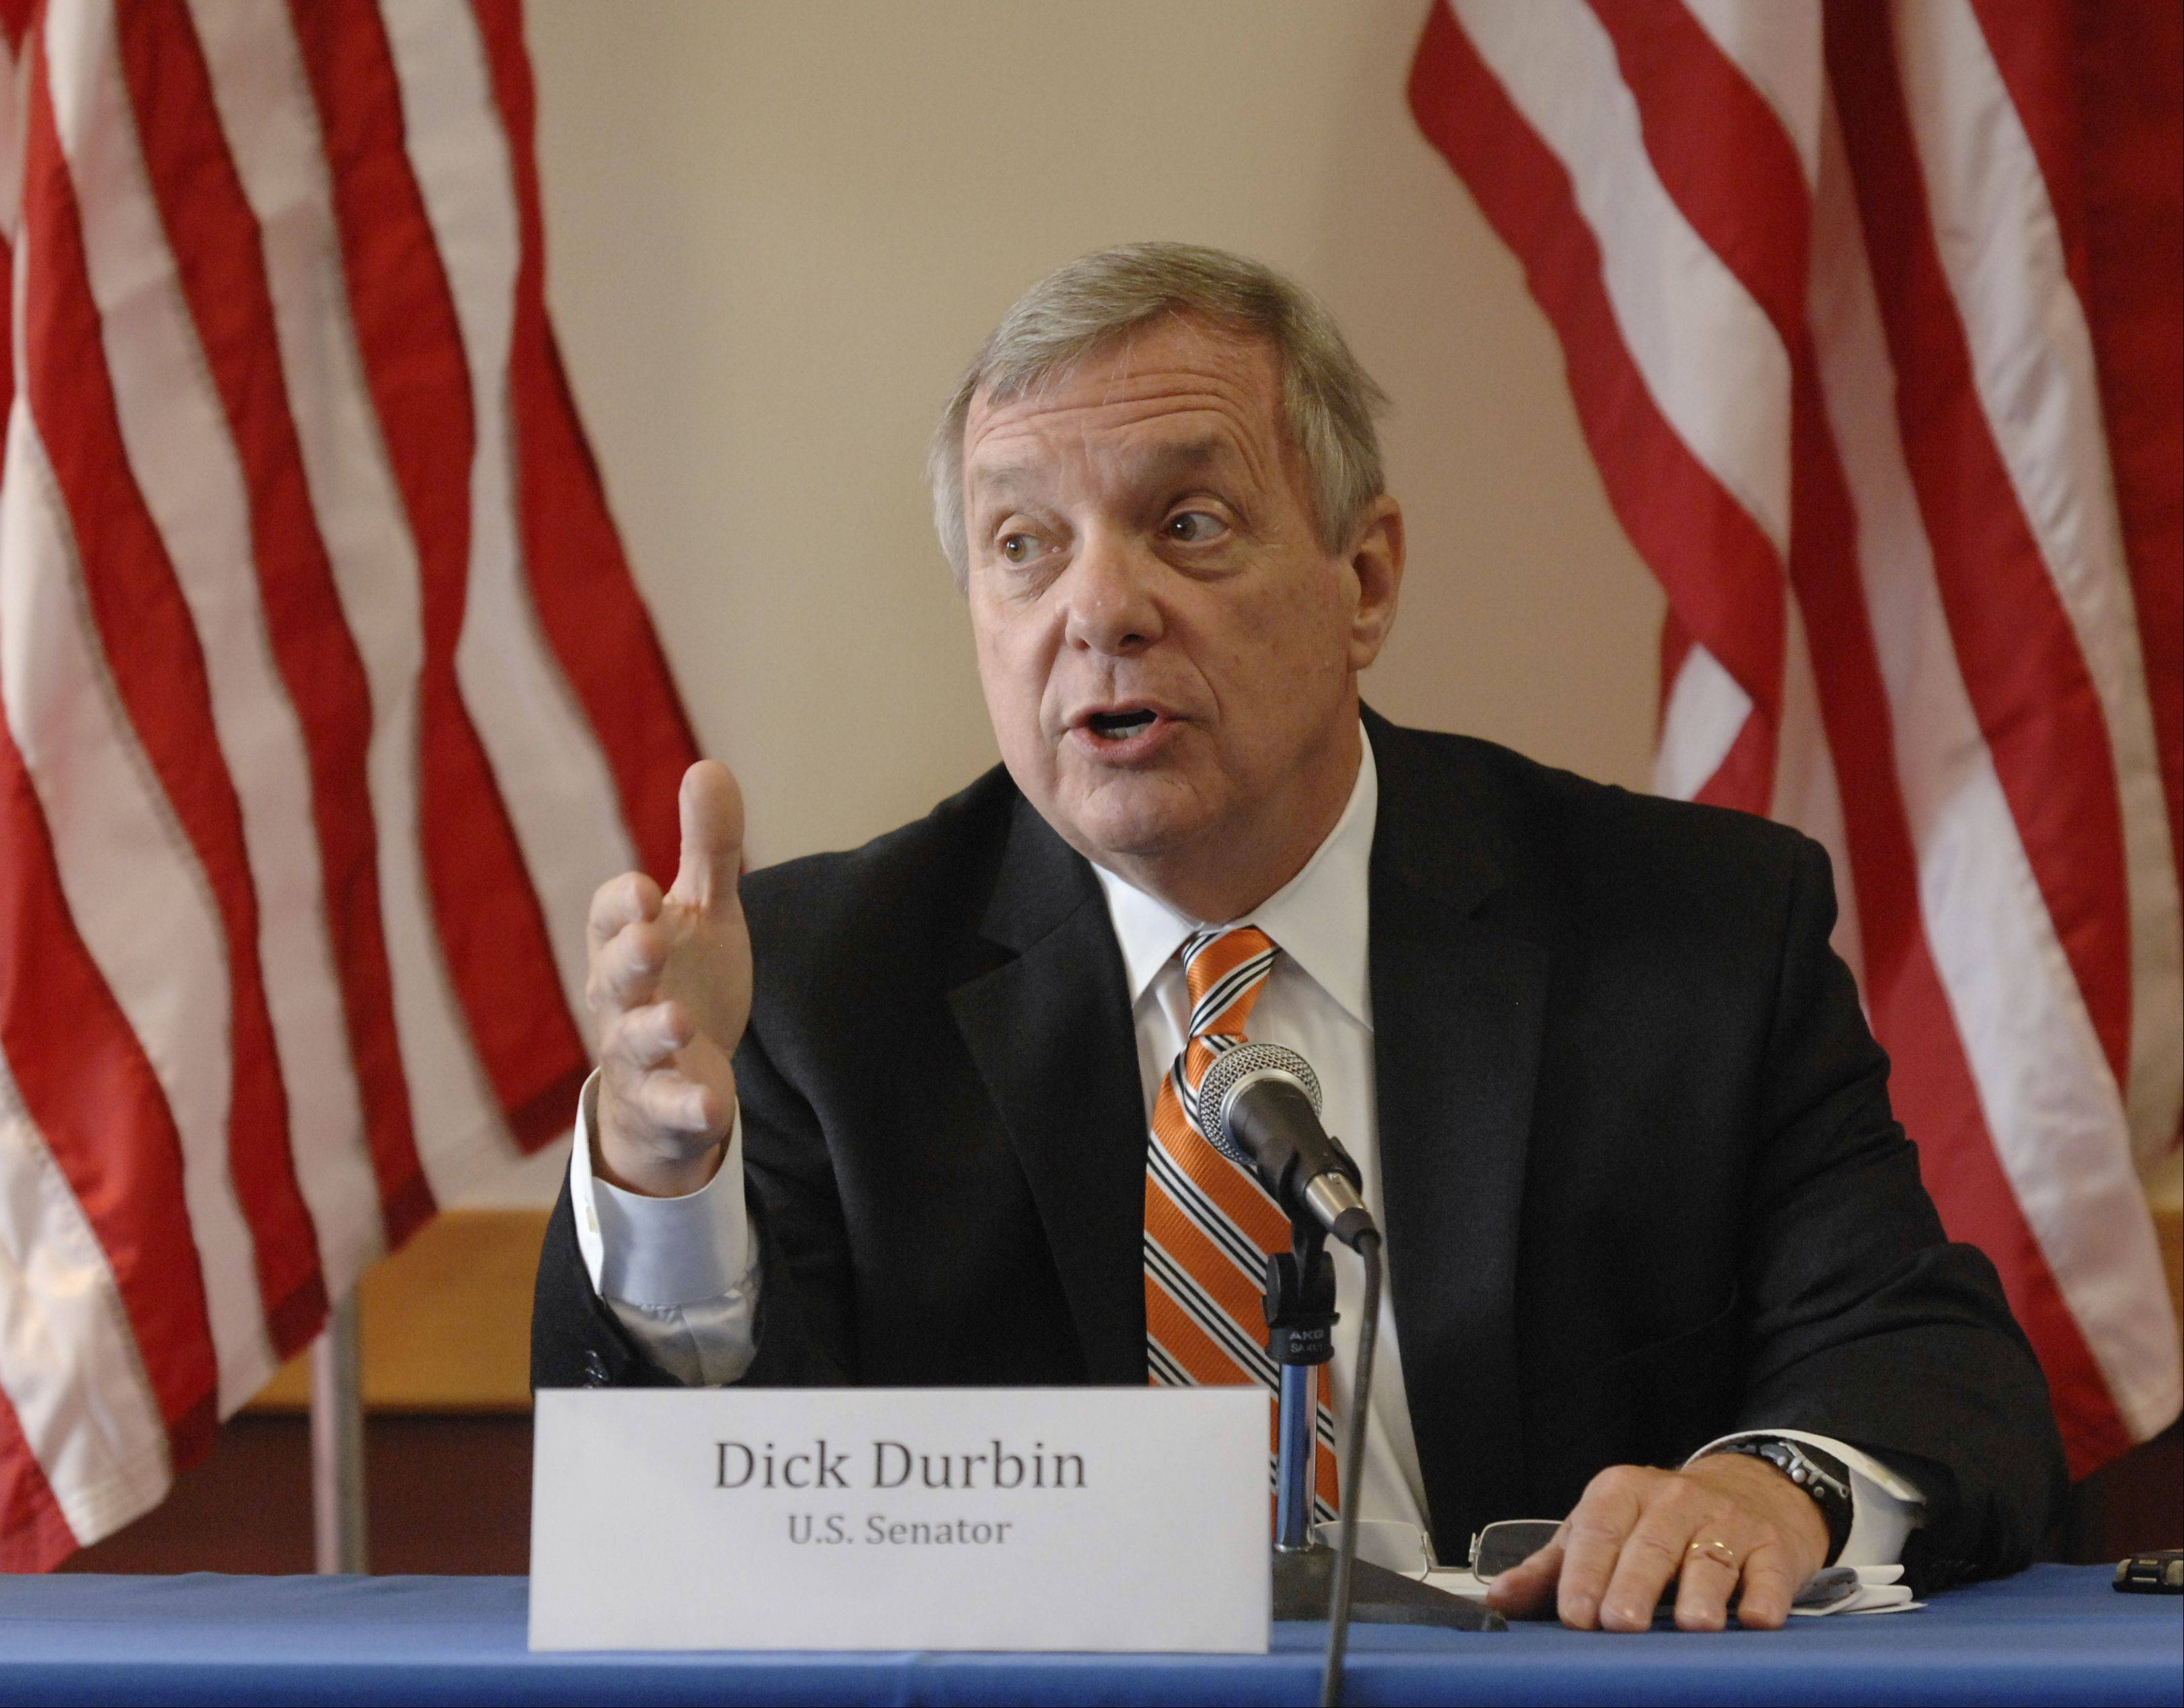 U.S. Sen Dick Durbin says he hopes the House takes action this year on immigration legislation the Senate approved to enhance border security and establish a legal path to citizenship for some of the nation's estimated 11 million undocumented immigrants.